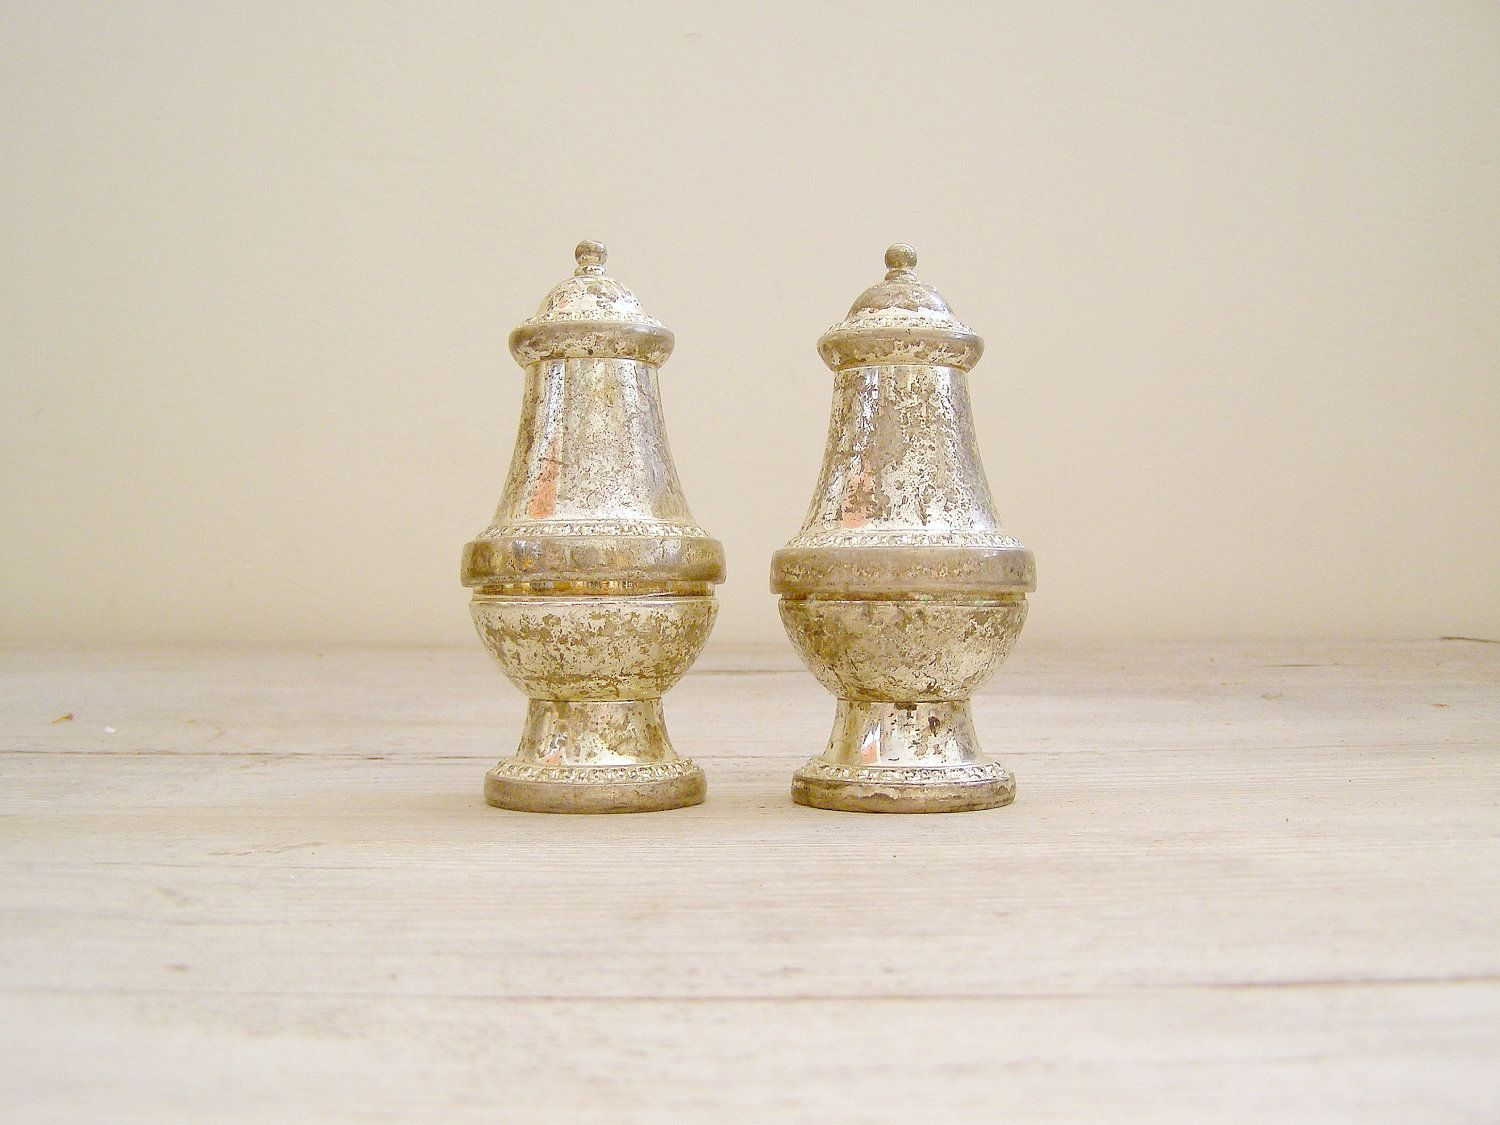 Vintage Salt and Pepper shakers, Zinc Victorian tableware, kitchen ware #kitchenware